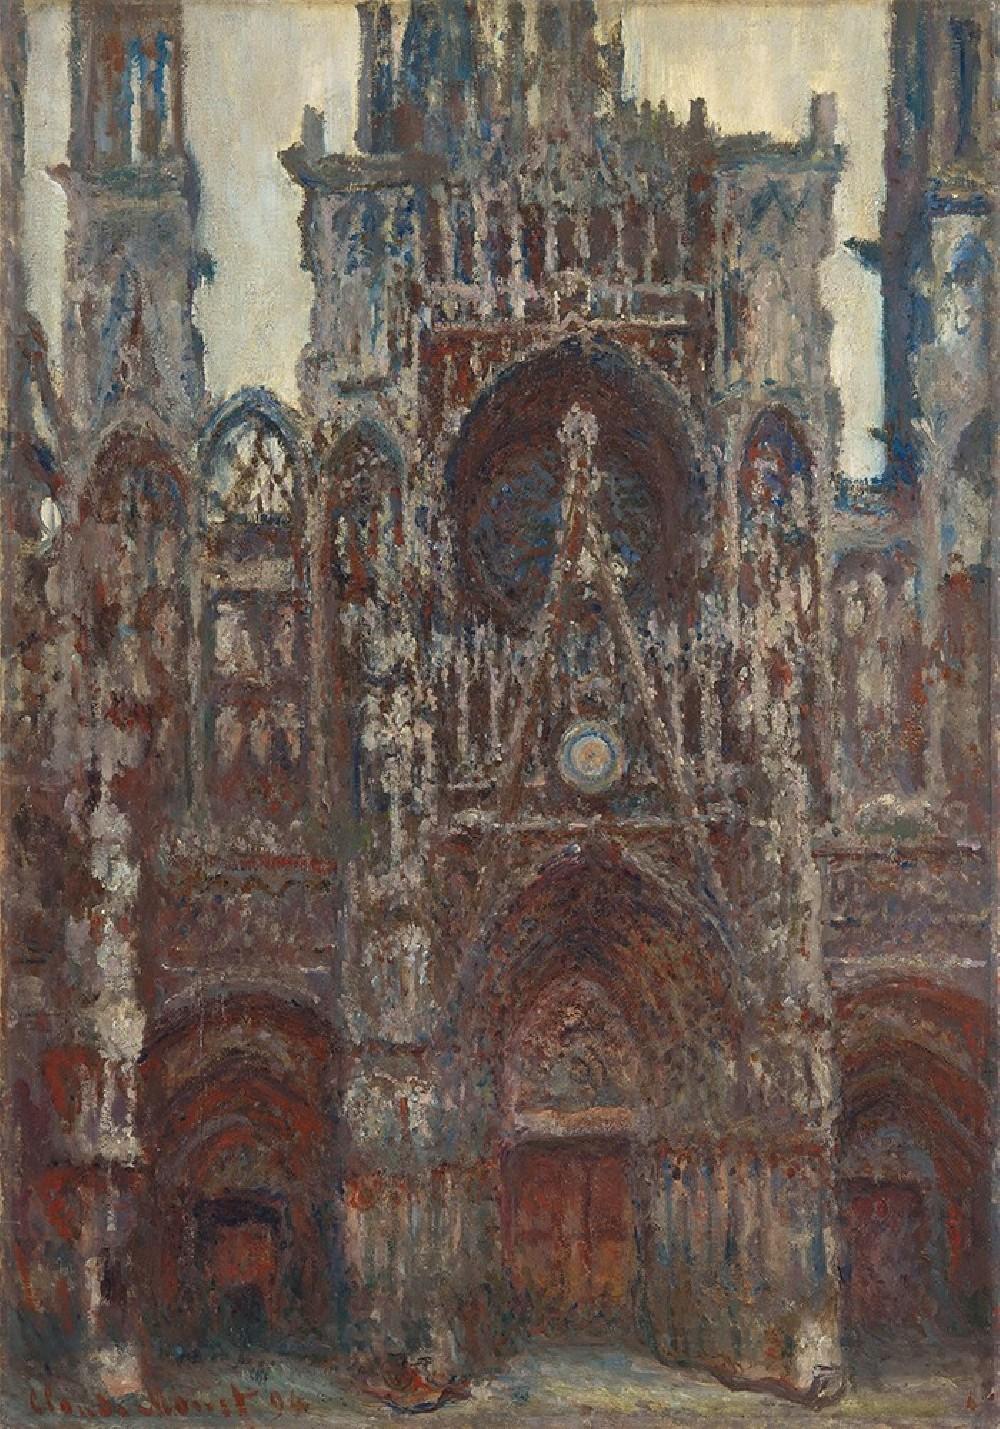 Rouen Cathedral, The Portal, Harmony in Brown